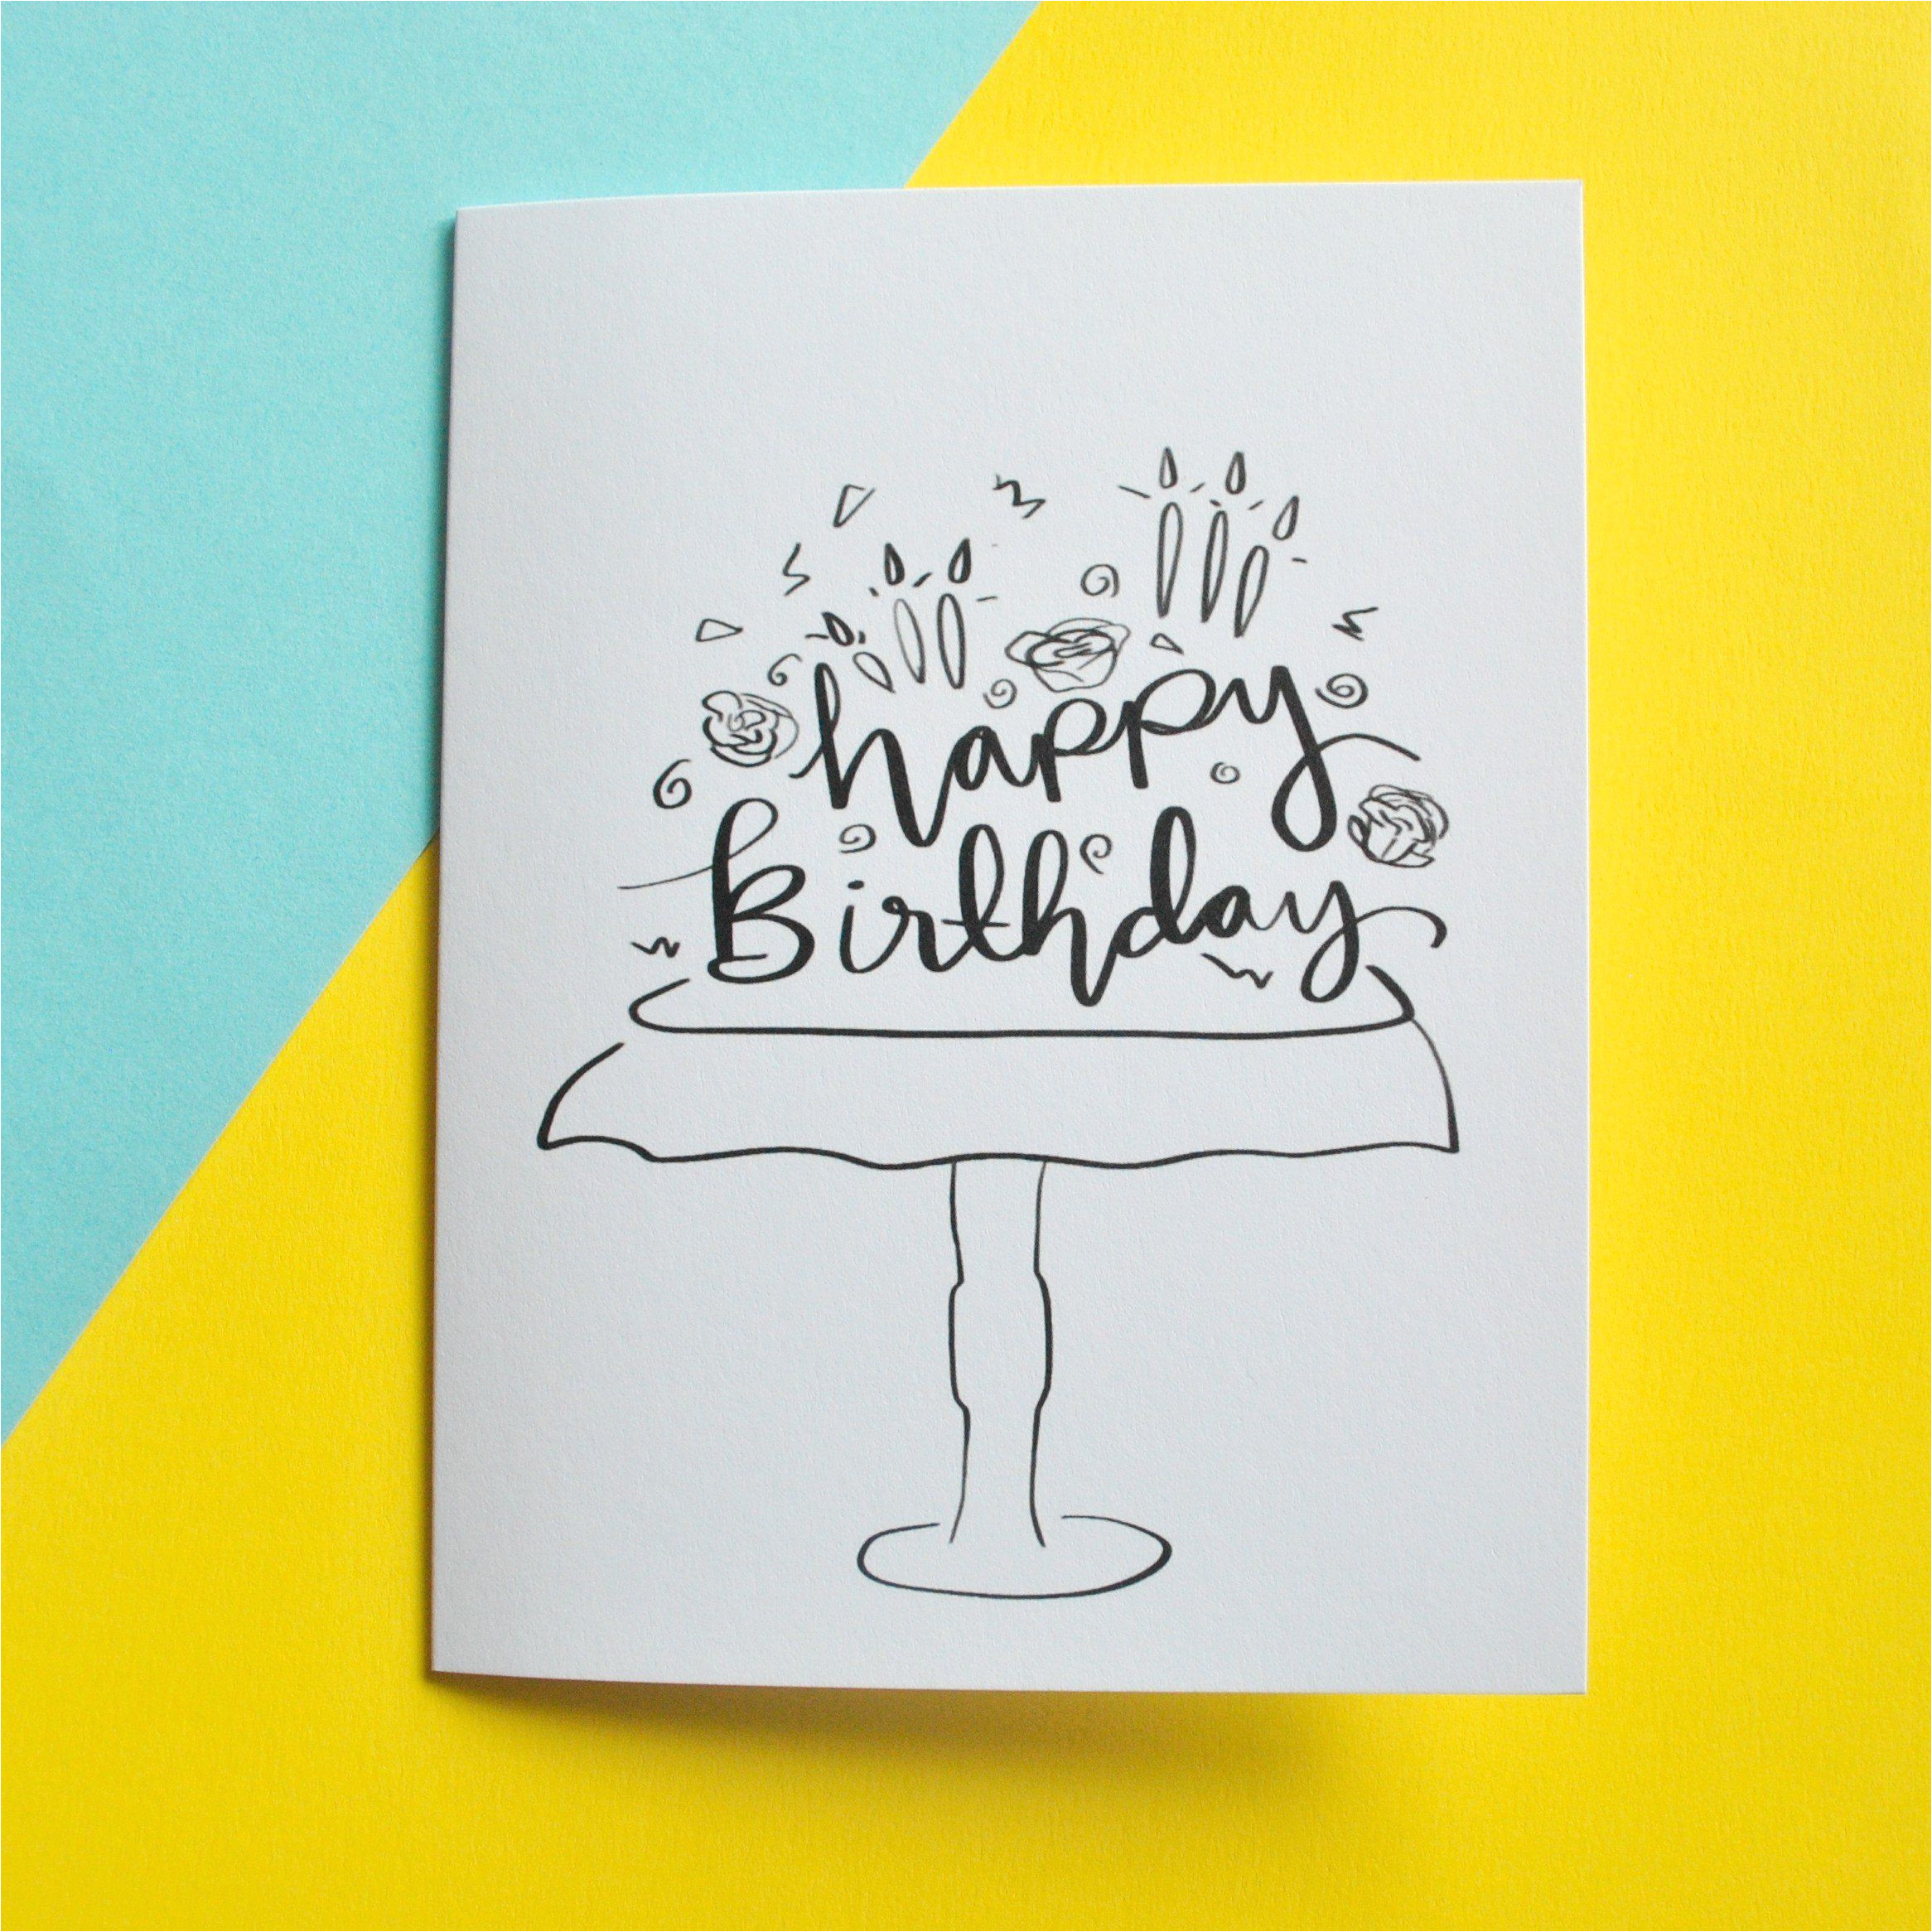 Happy Birthday Card On Pinterest Black and White Cake Happy Birthday Card with Images